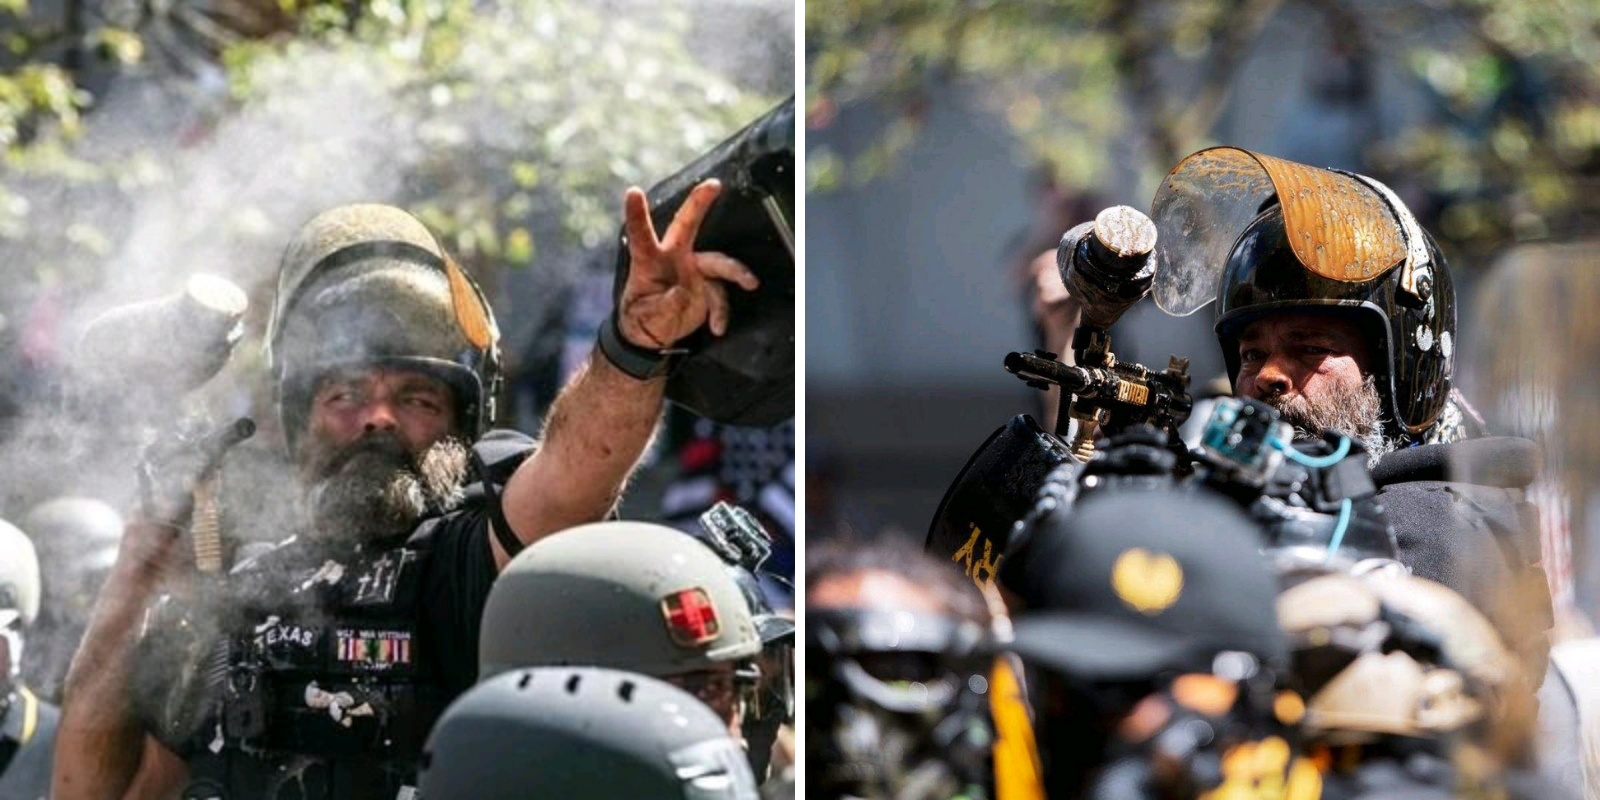 Multiple media outlets falsely claim man arrested for assault during Portland riots is a 'Proud Boy'